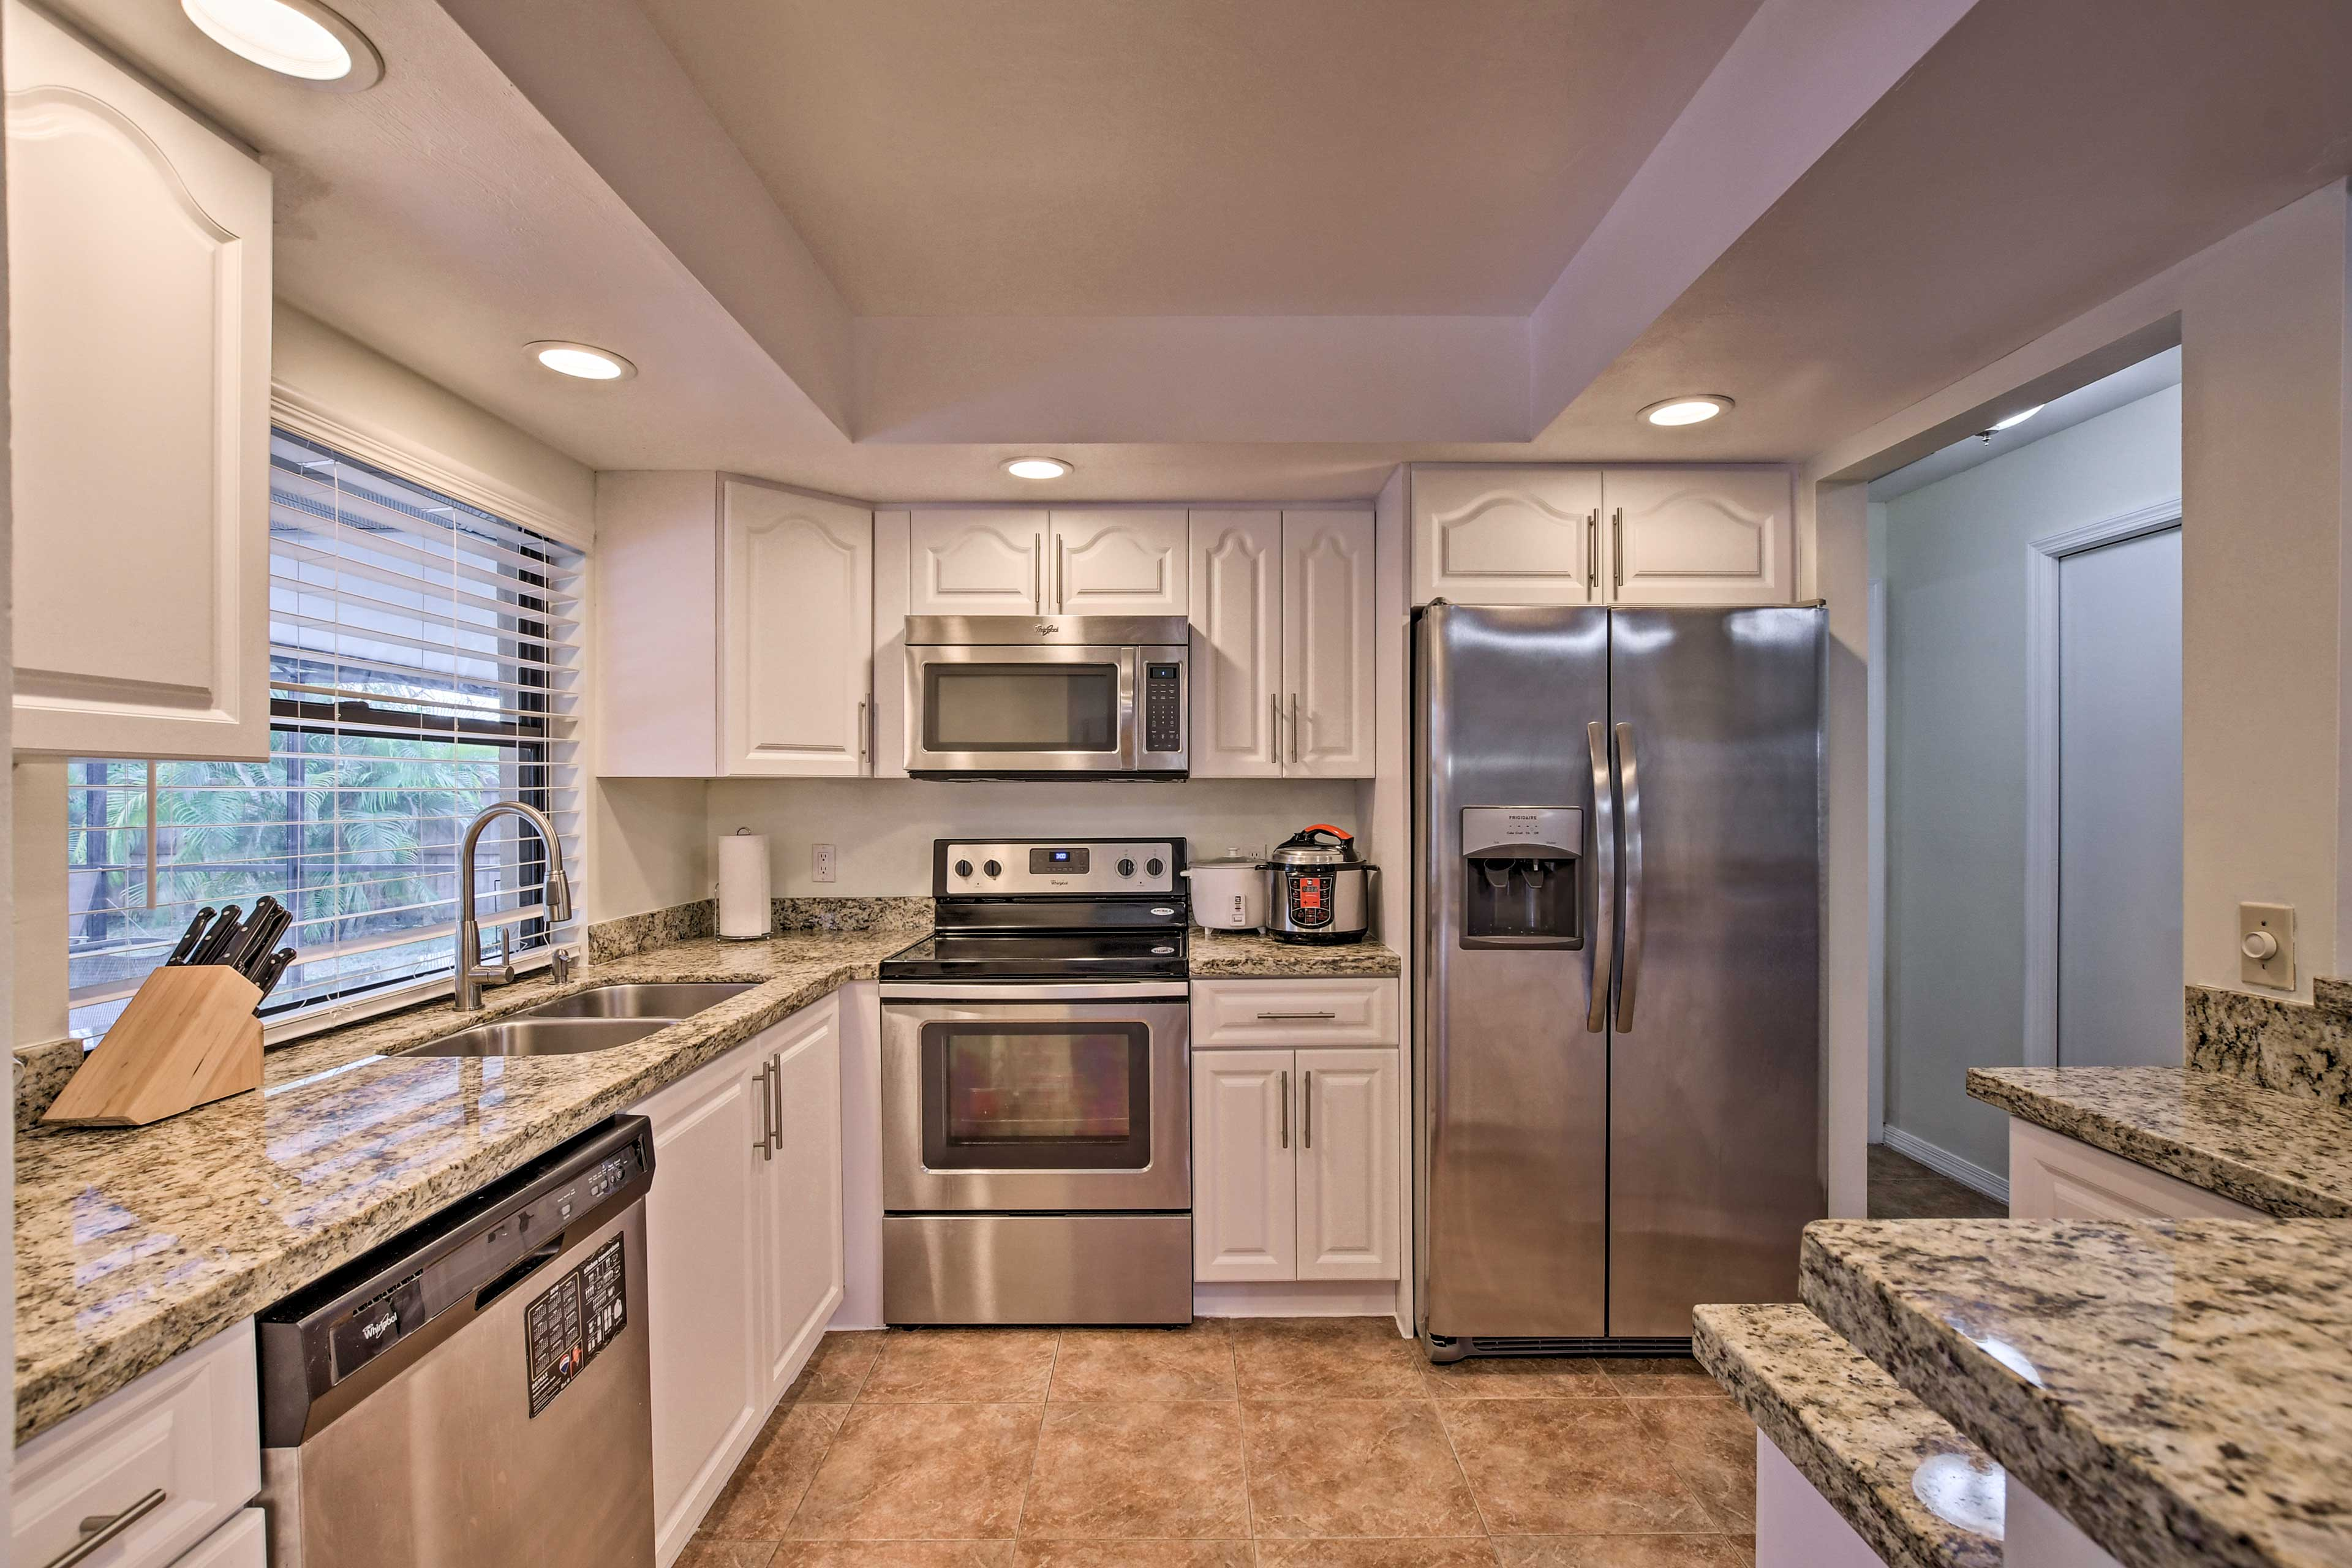 Utilize the stainless steel appliances.